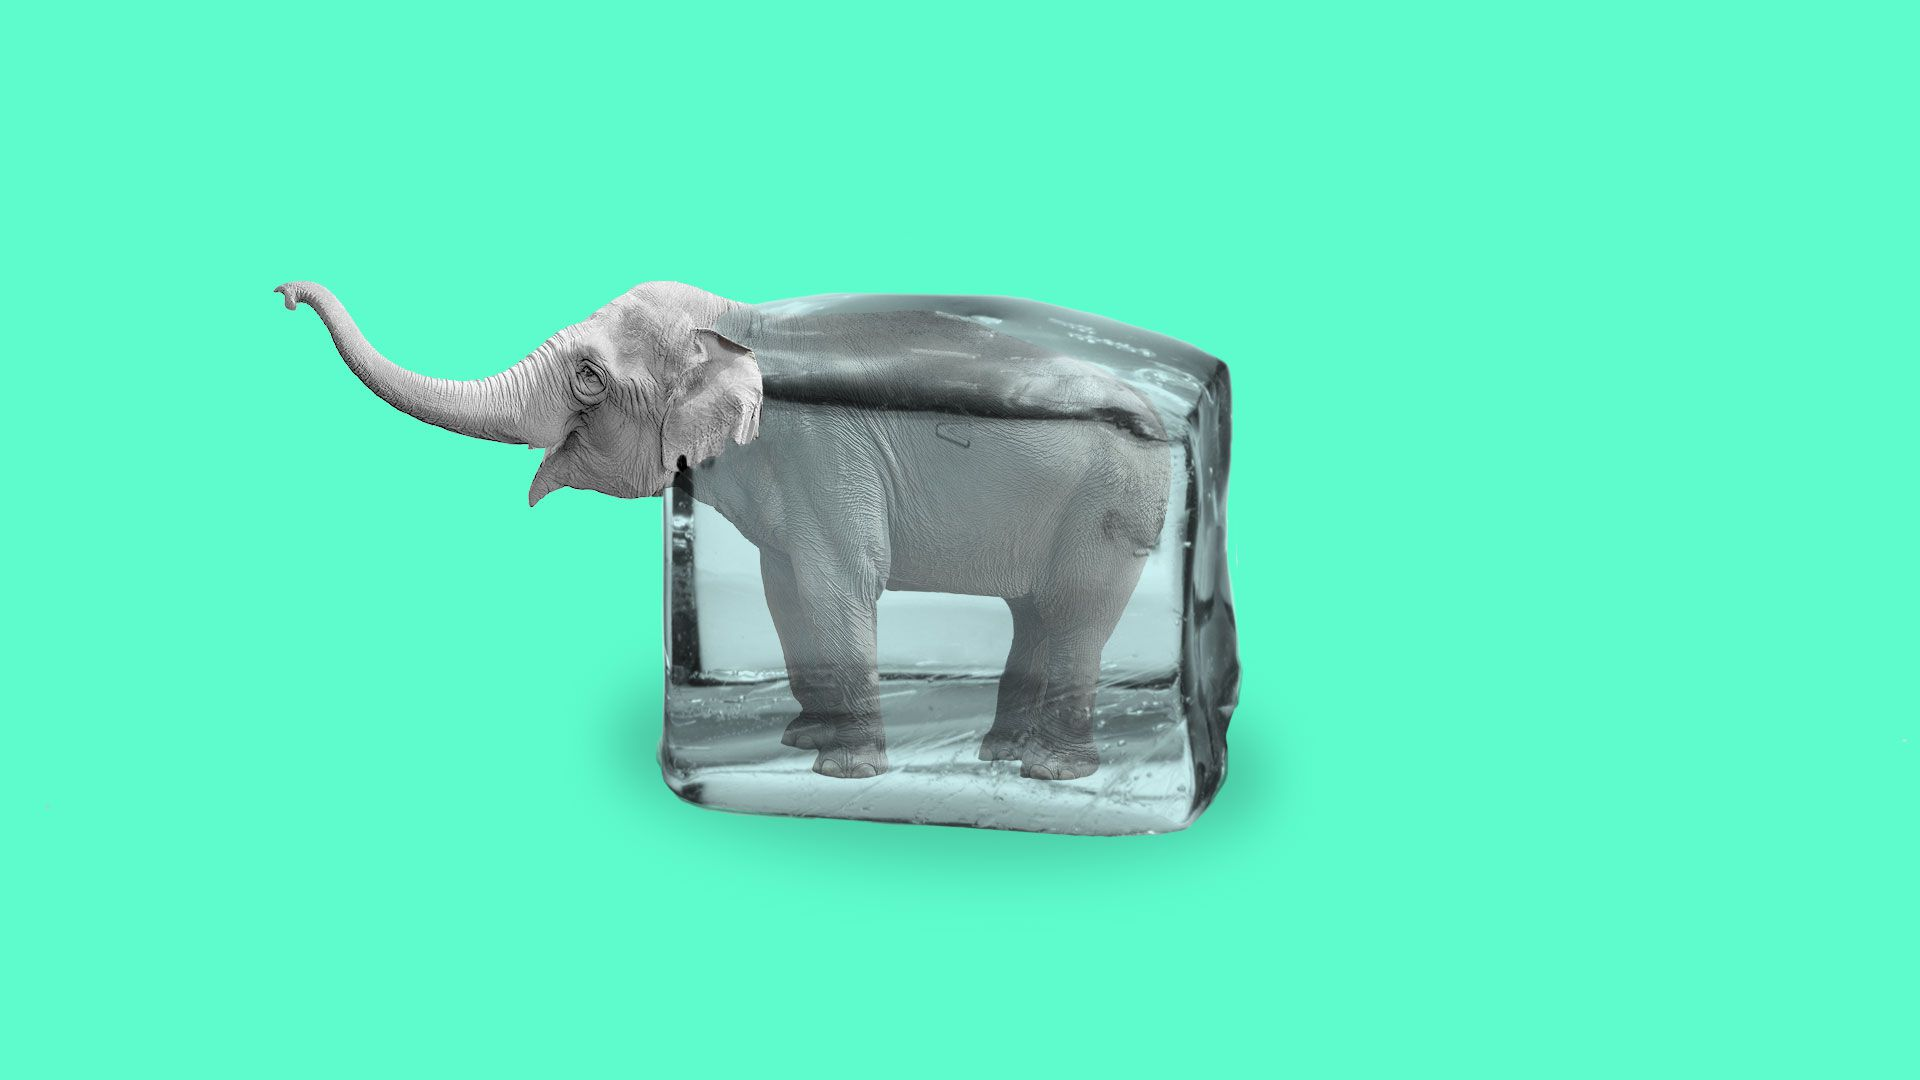 GOP coming back in from the cold on climate change - Axios